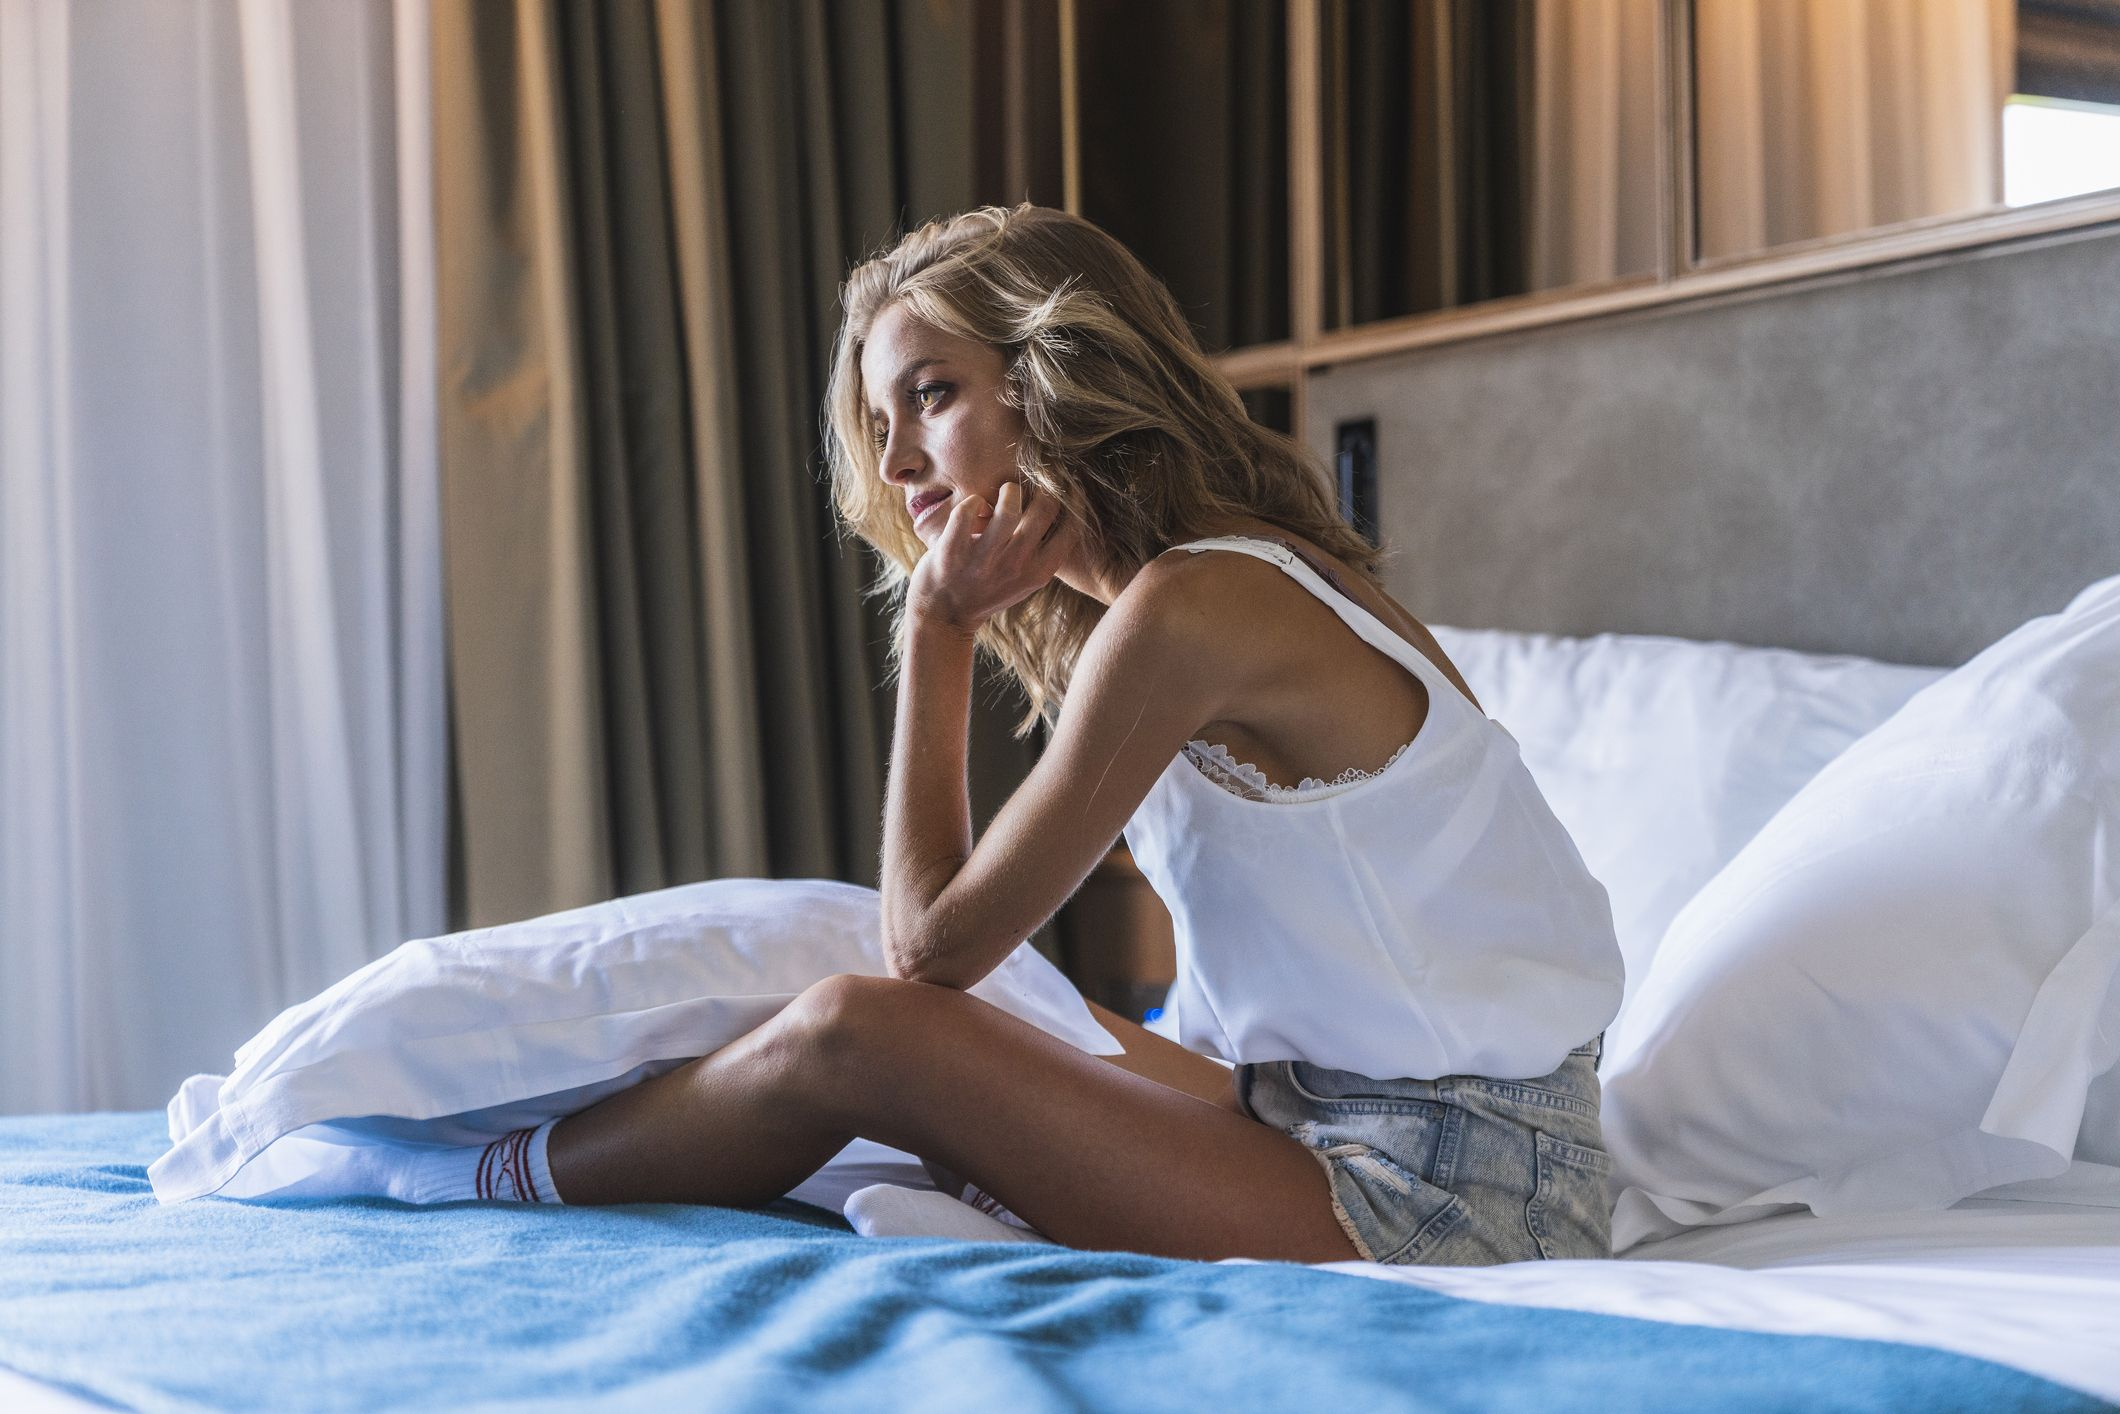 Ever Heard of 'the Chairman?' Here's Exactly How to Master This Sex Position